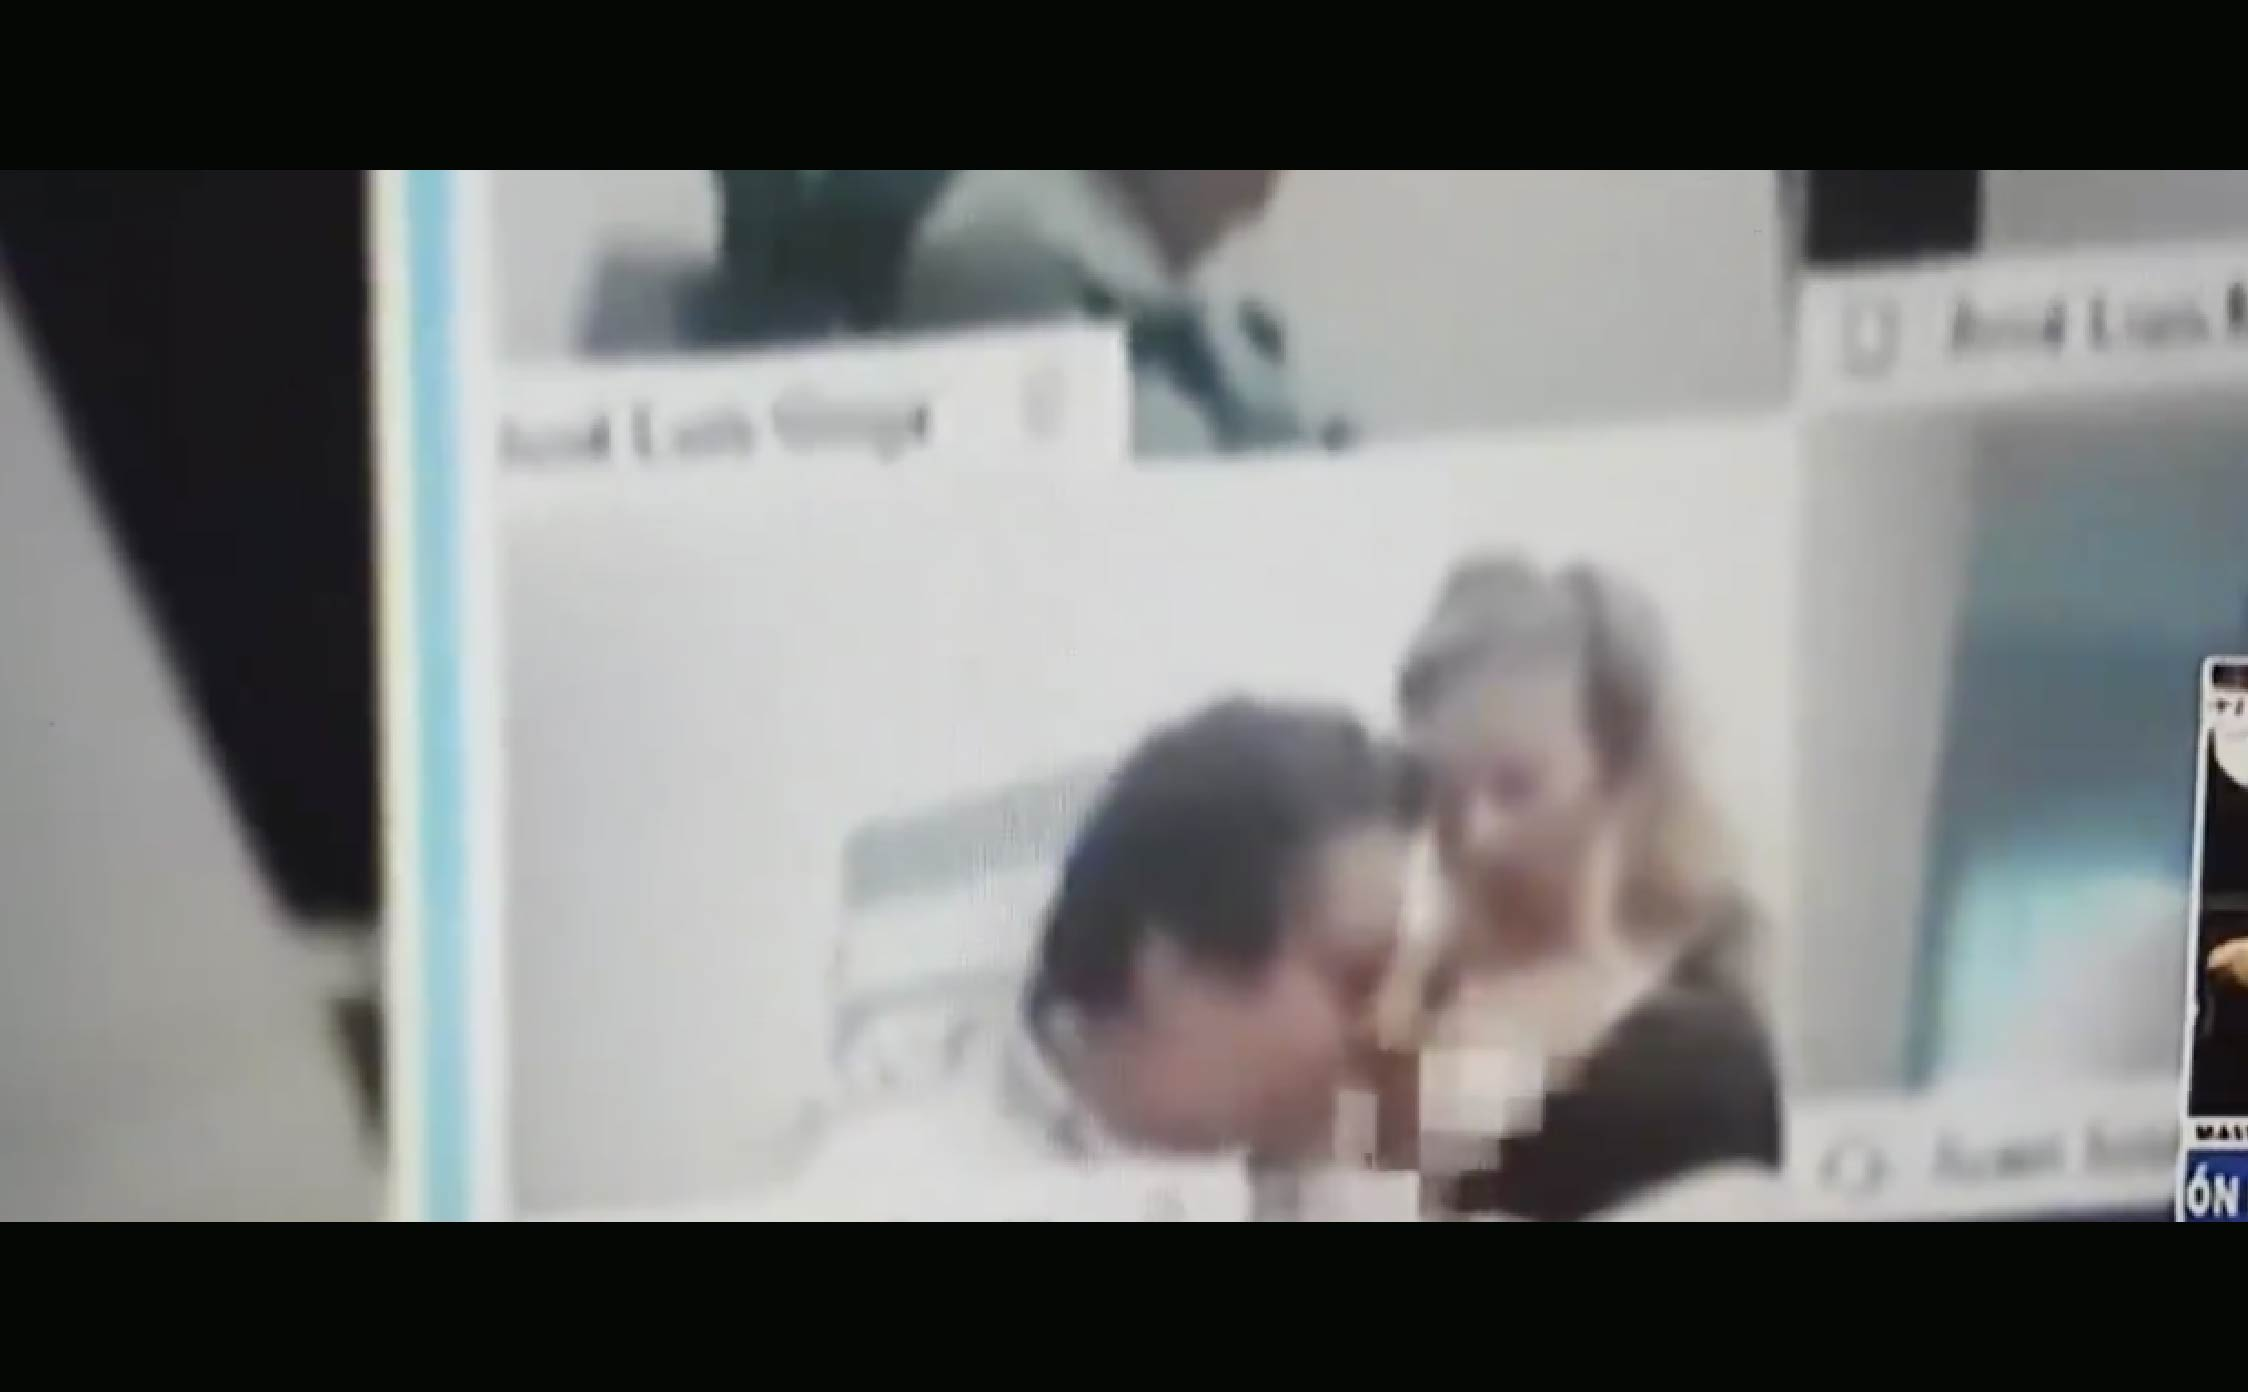 [VIDEO] Married Lawmaker Resigns After He's Busted Exposing and Kissing Mistress's Breast Online During Virtual Session